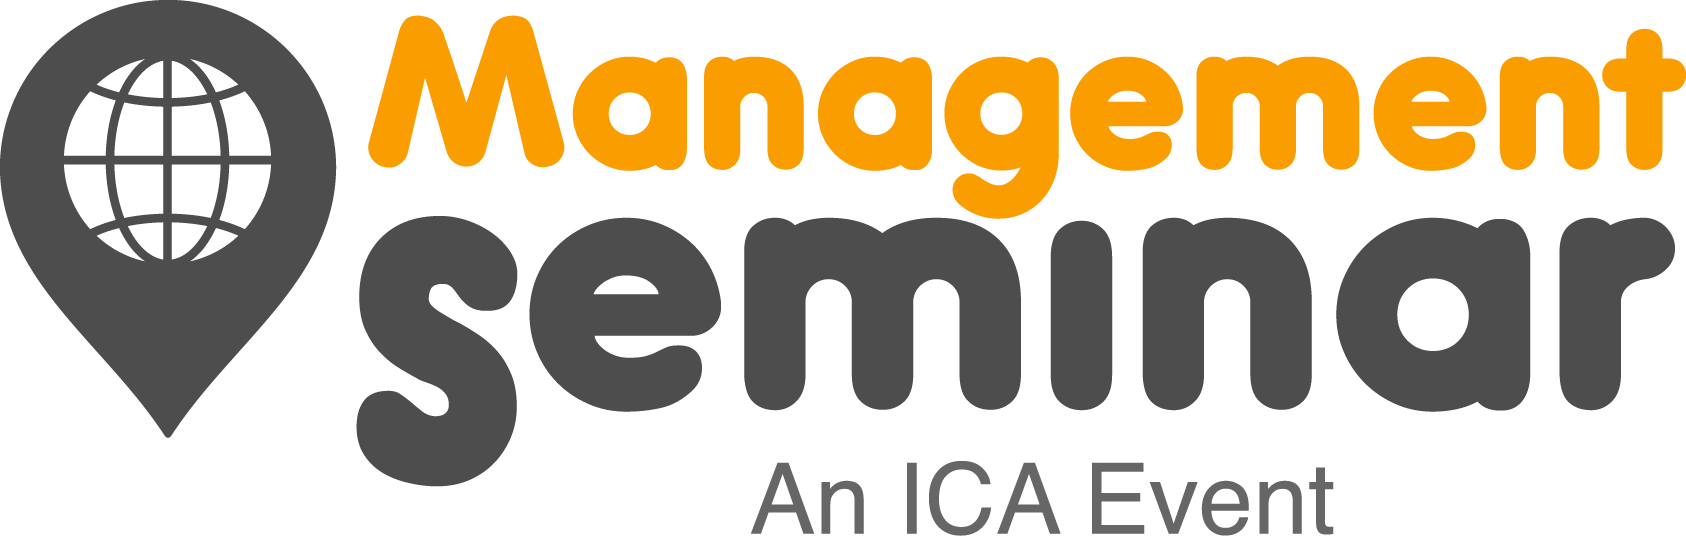 ICA_Management_Logo_F